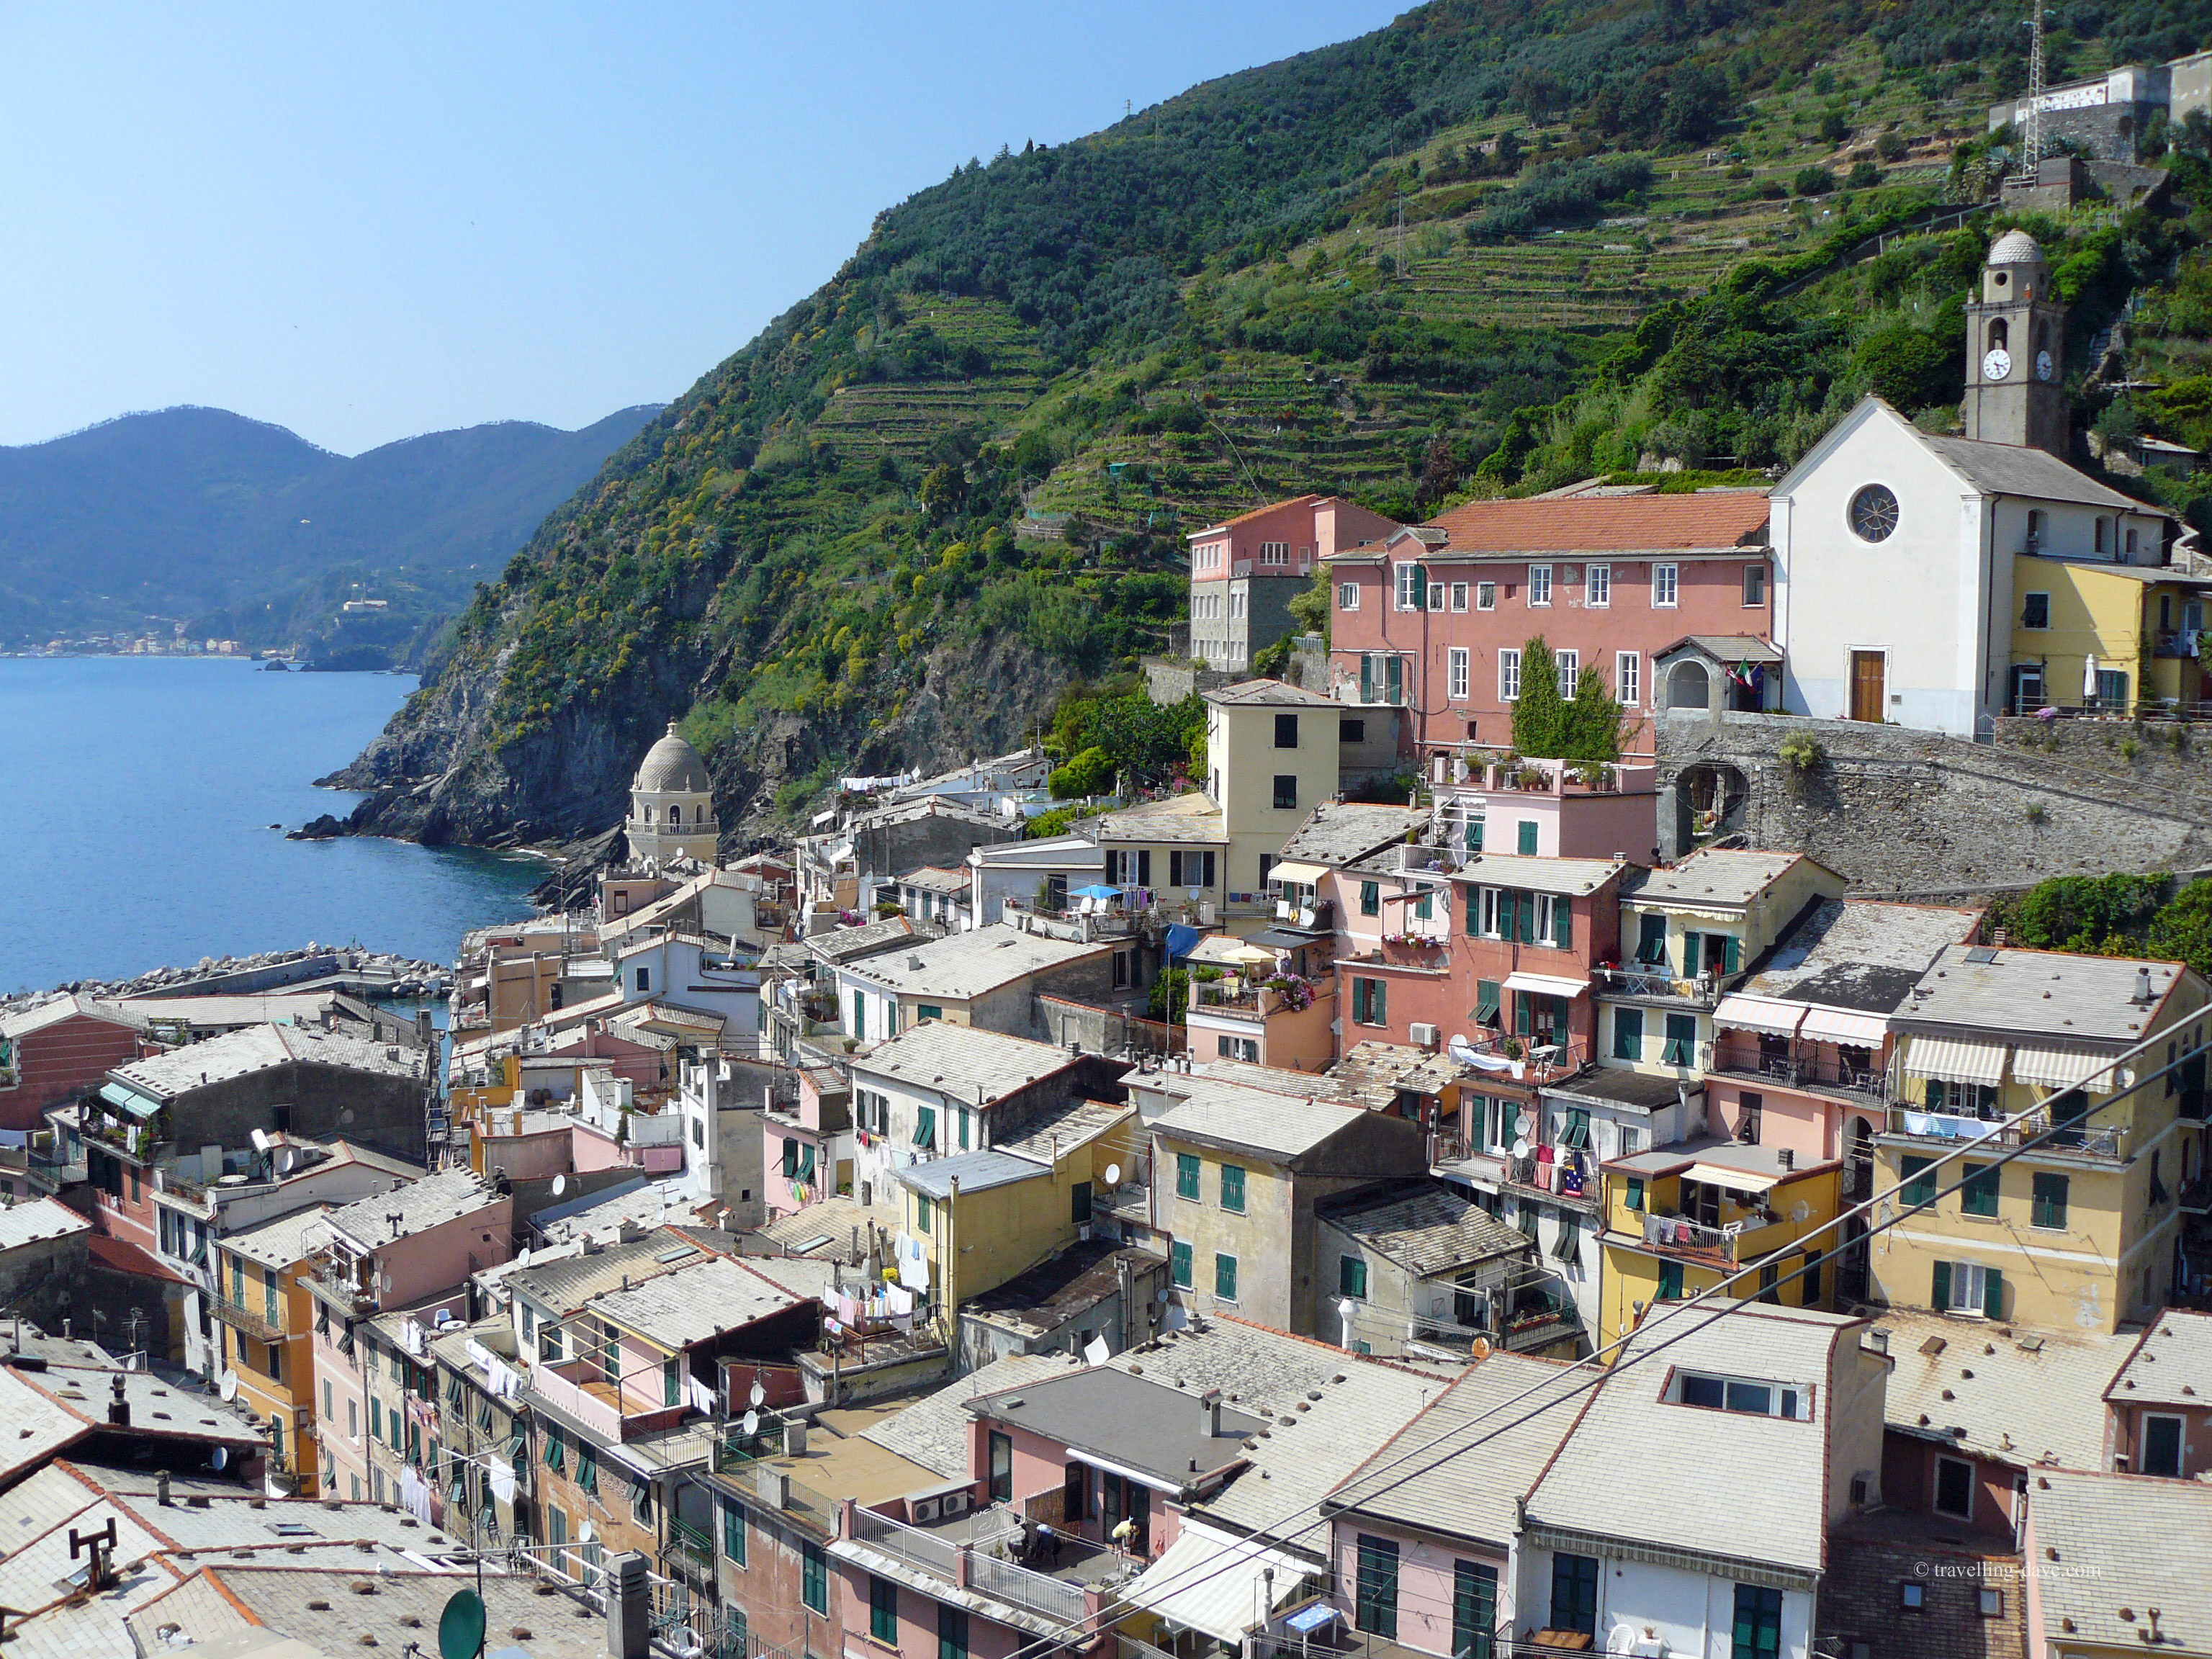 View of the village of Vernazza in Italy